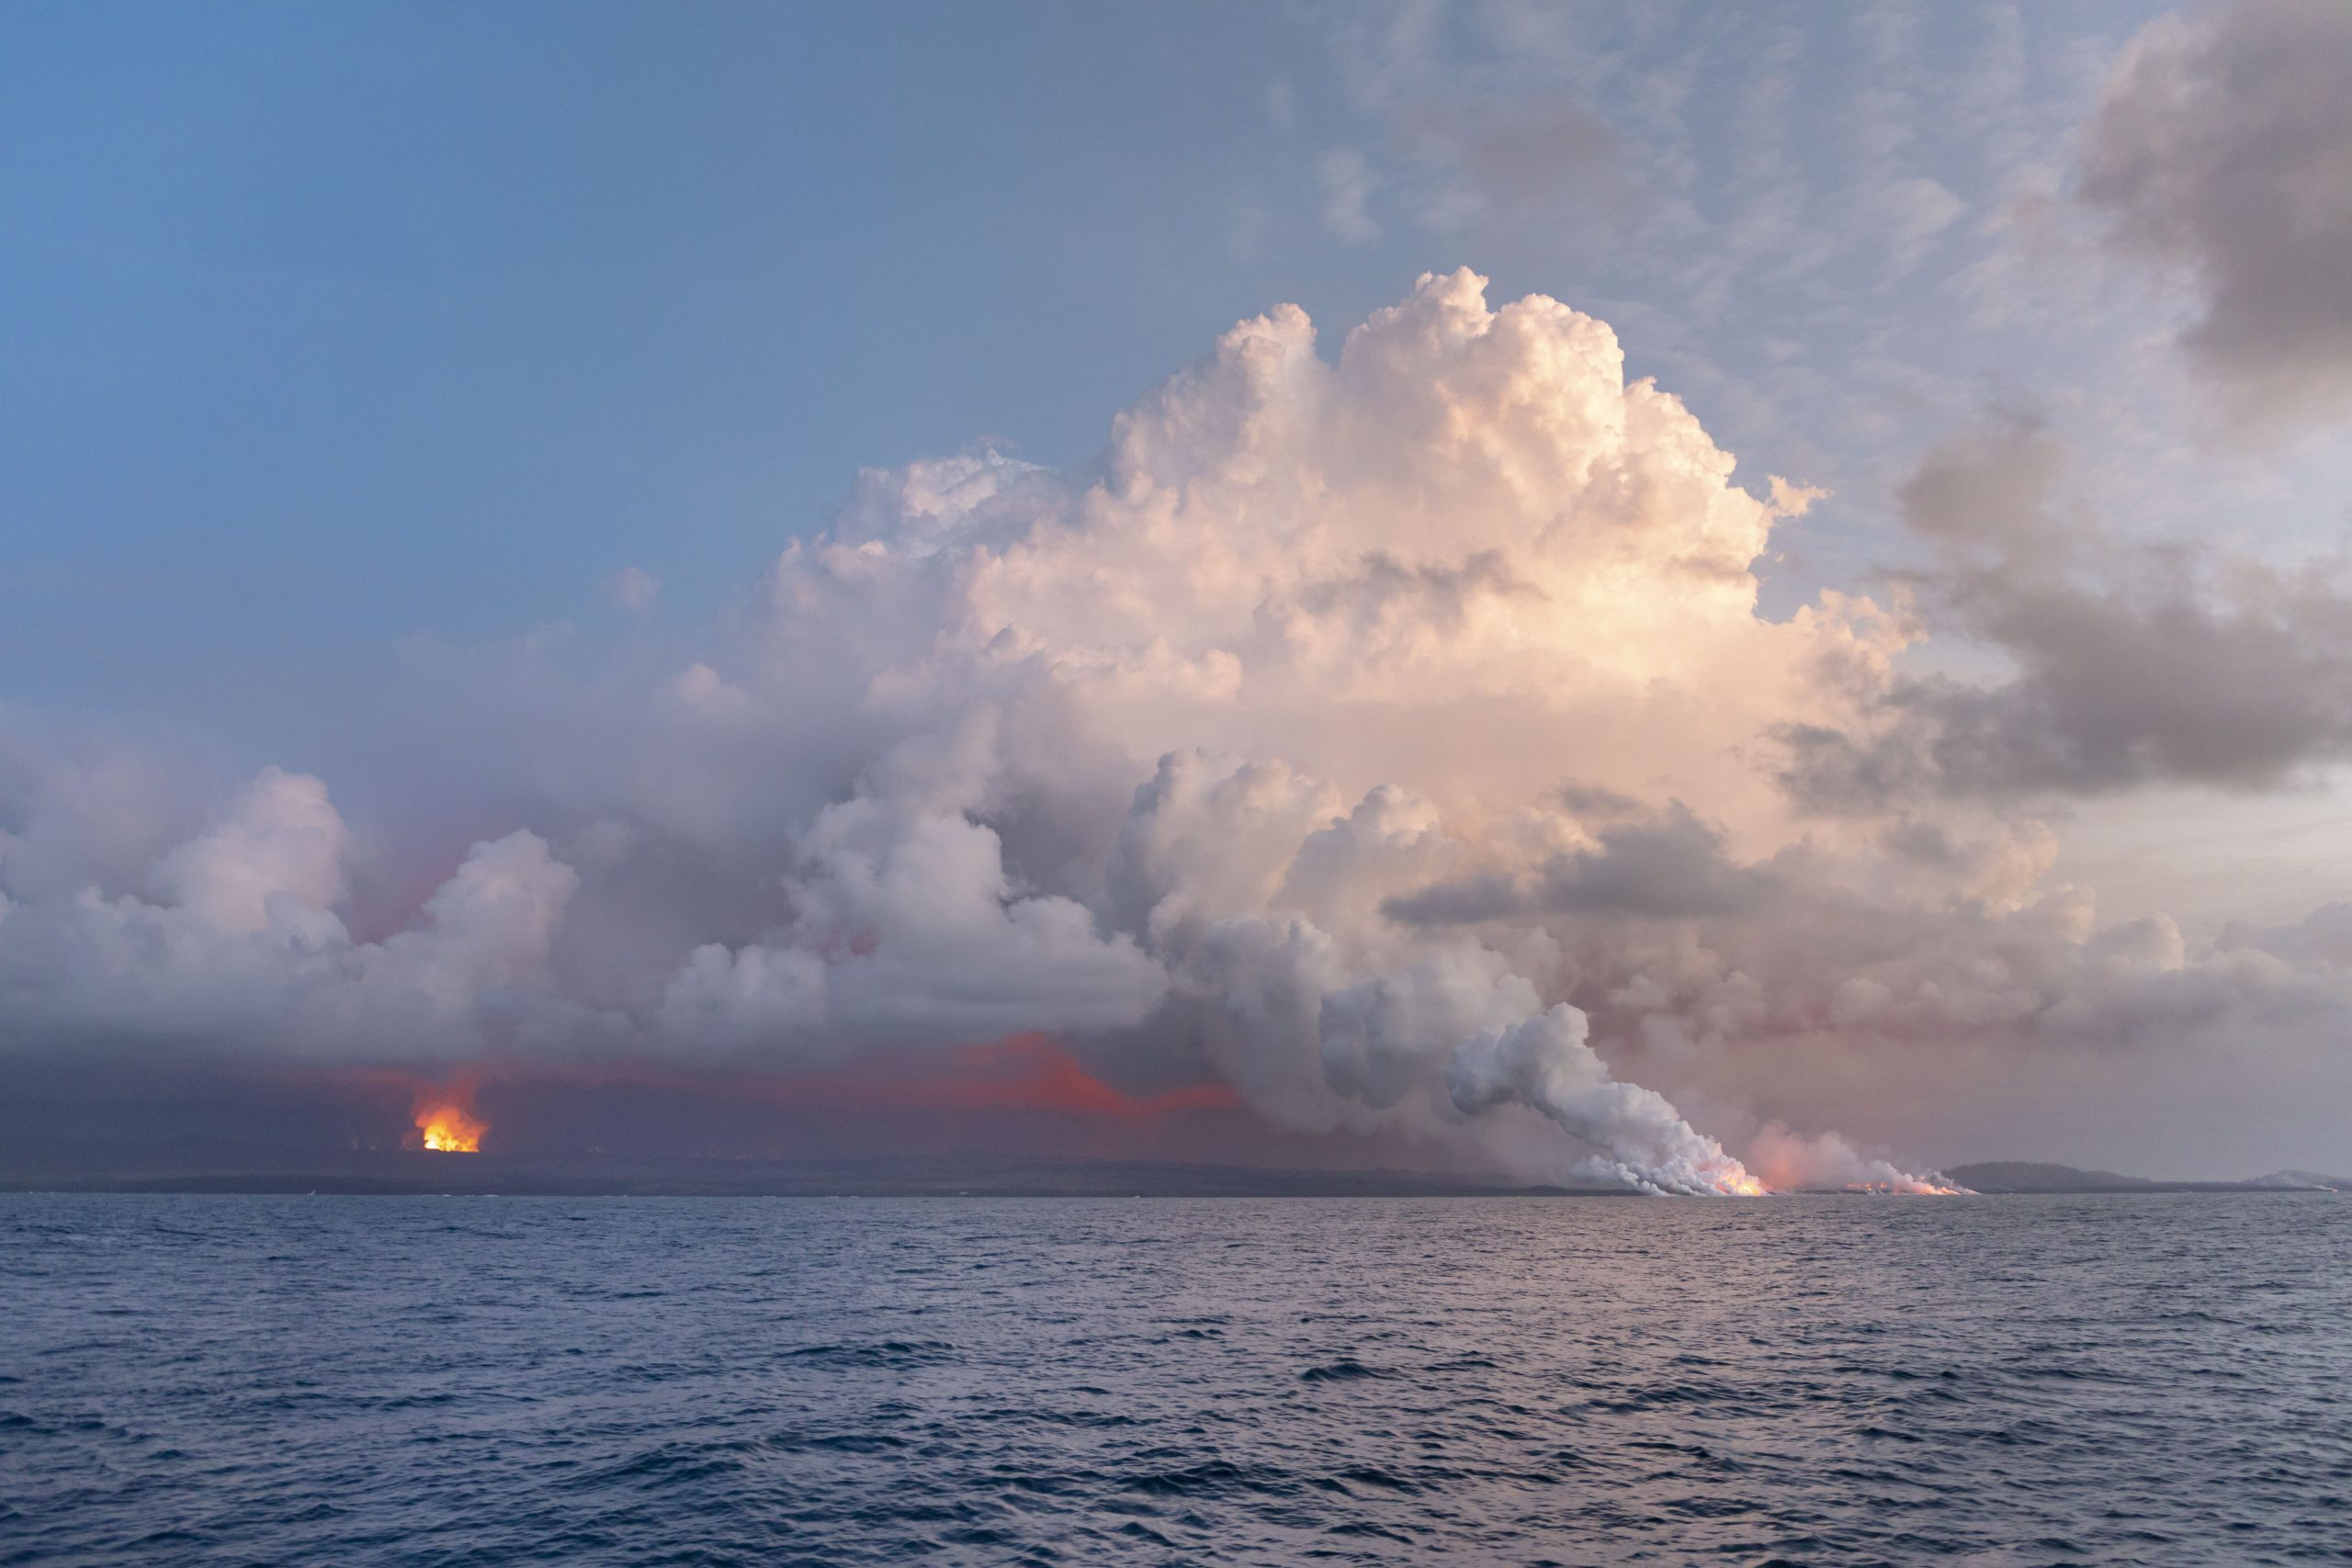 July 2018 Kilauea east rift zone eruption produced vog.